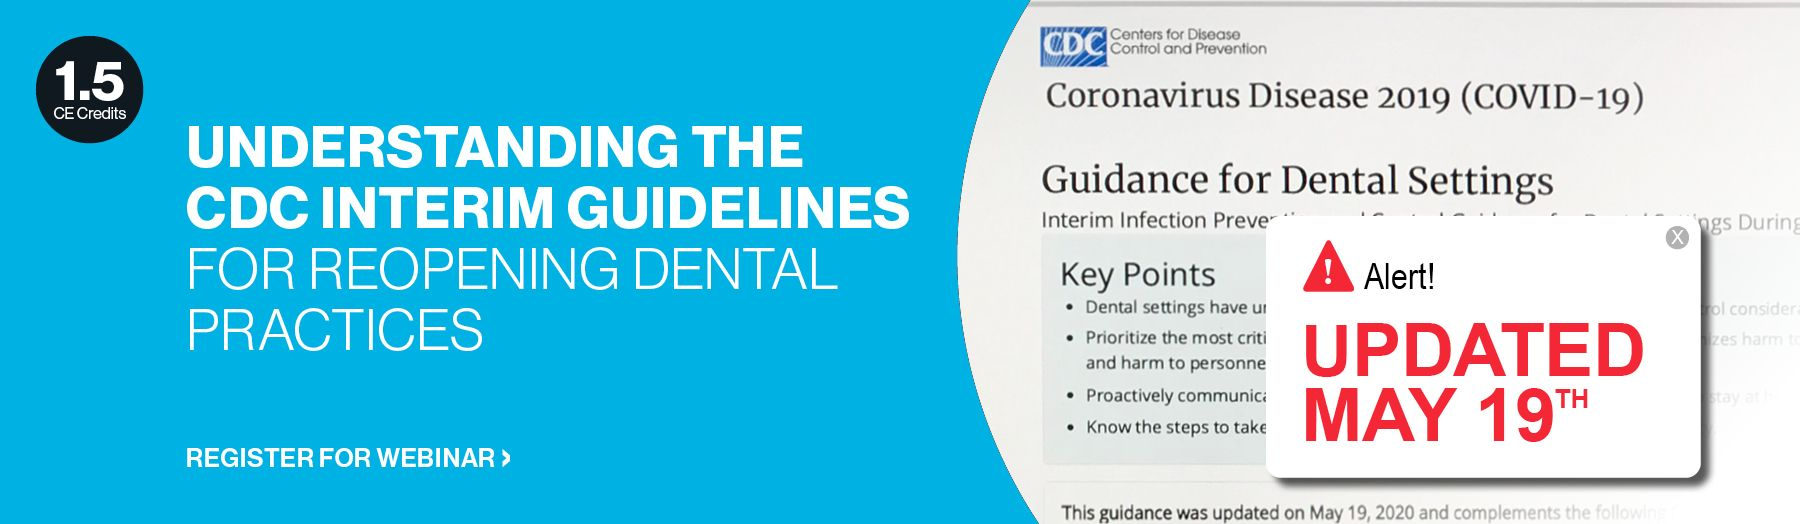 Understanding the CDC interim guidelines for reopening dental practices